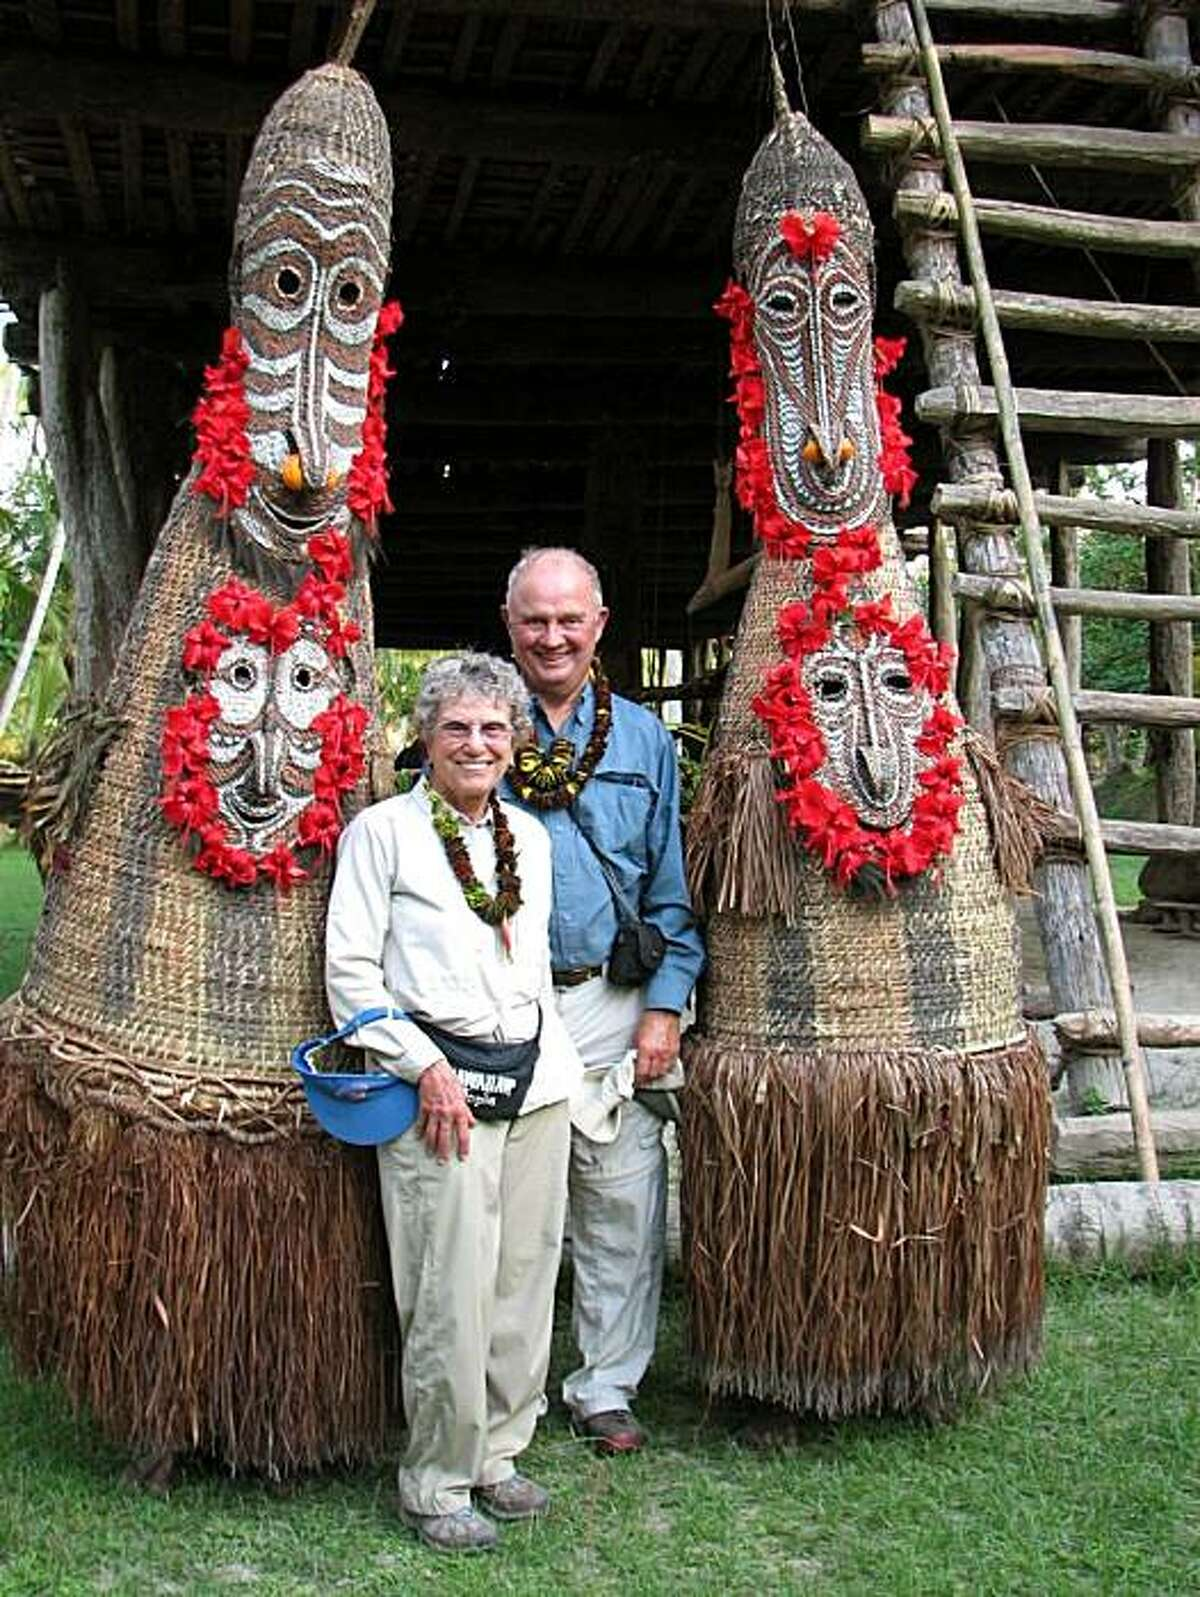 Diana and Dave Butler of El Sobrante in Papua, New Guinea.